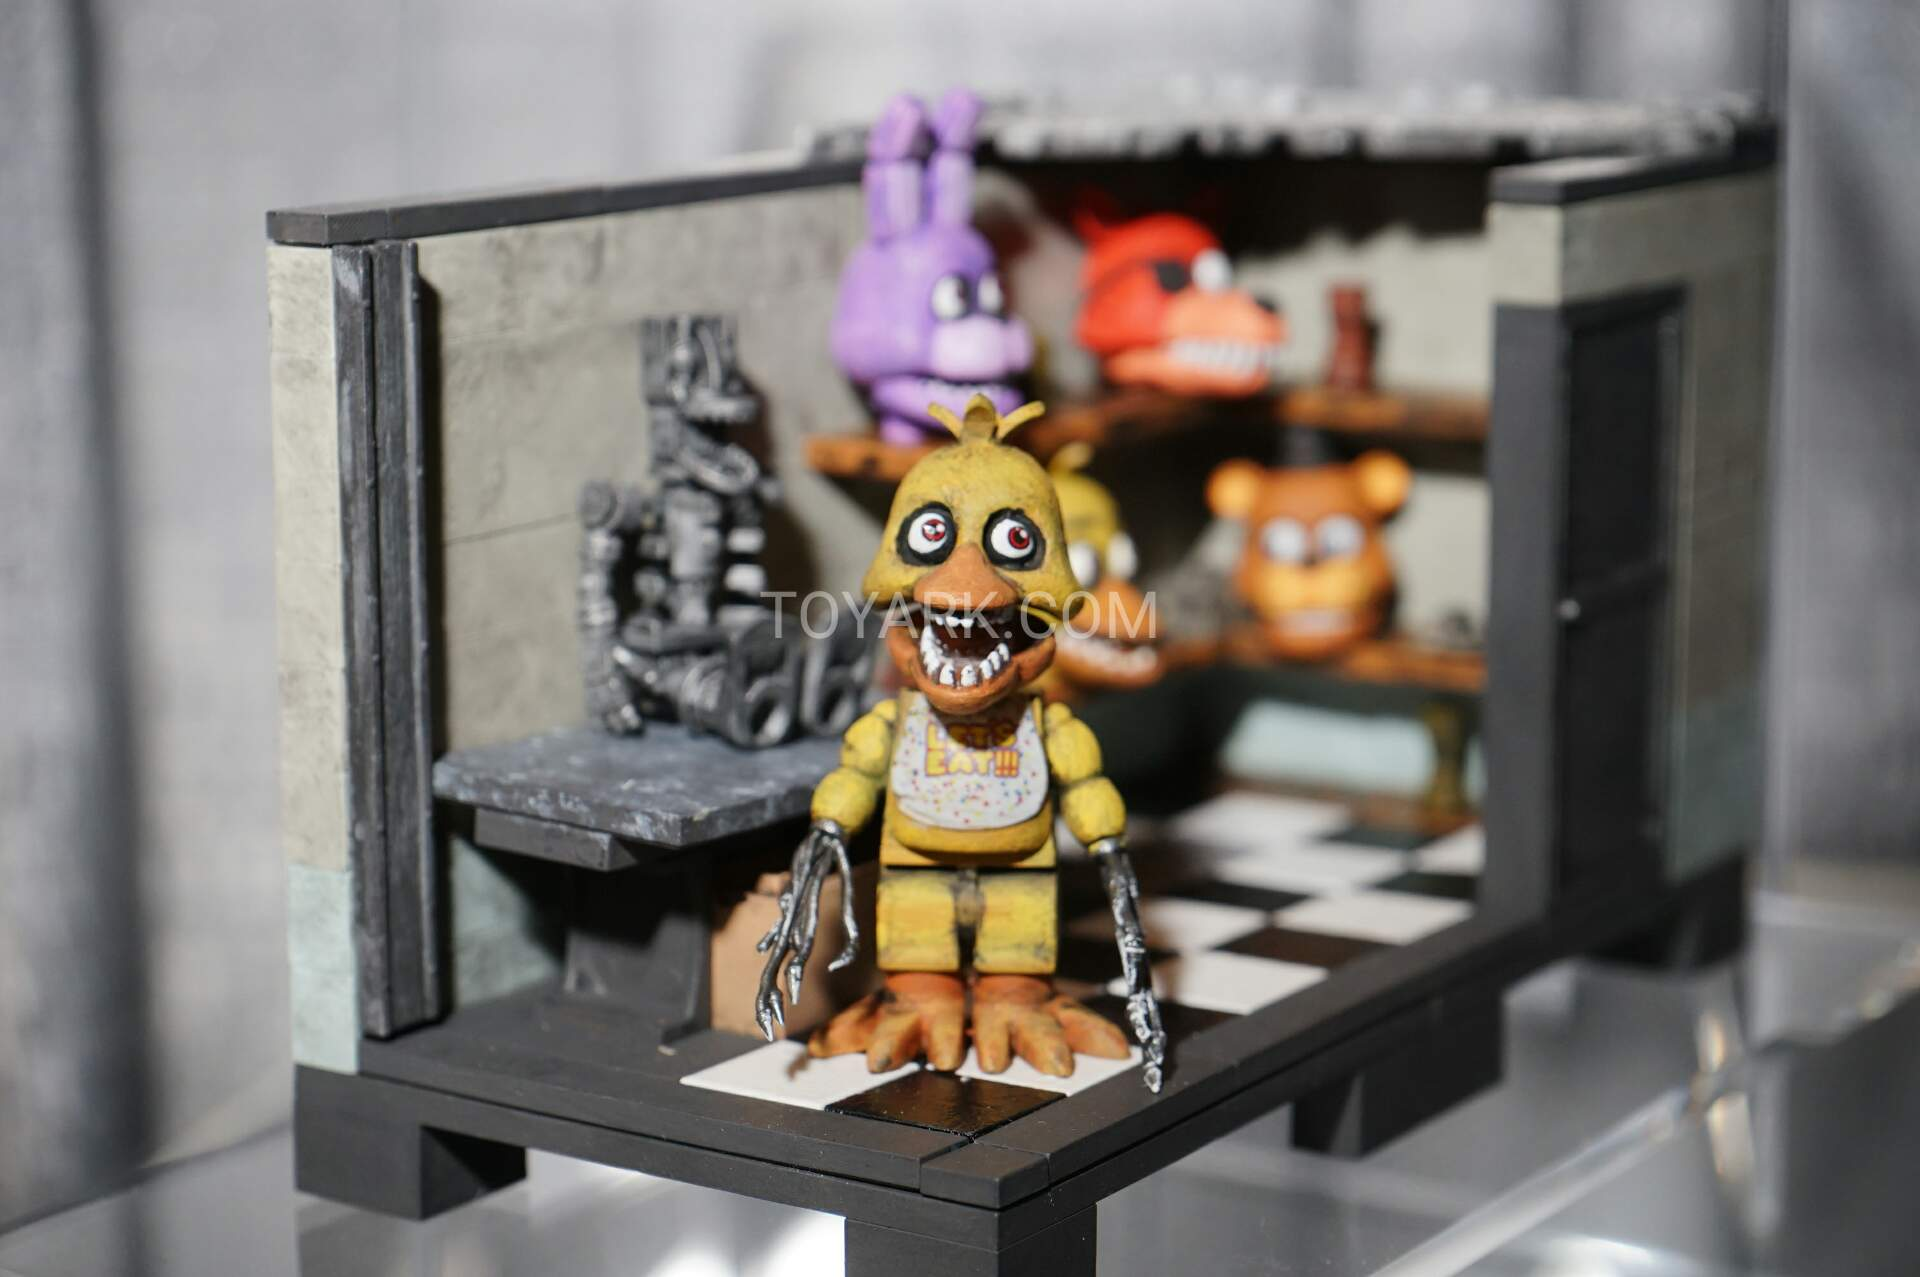 More five nights at freddy s construction sets coming soon - Tf 2016 Mcfarlane Five Nights Construction 009